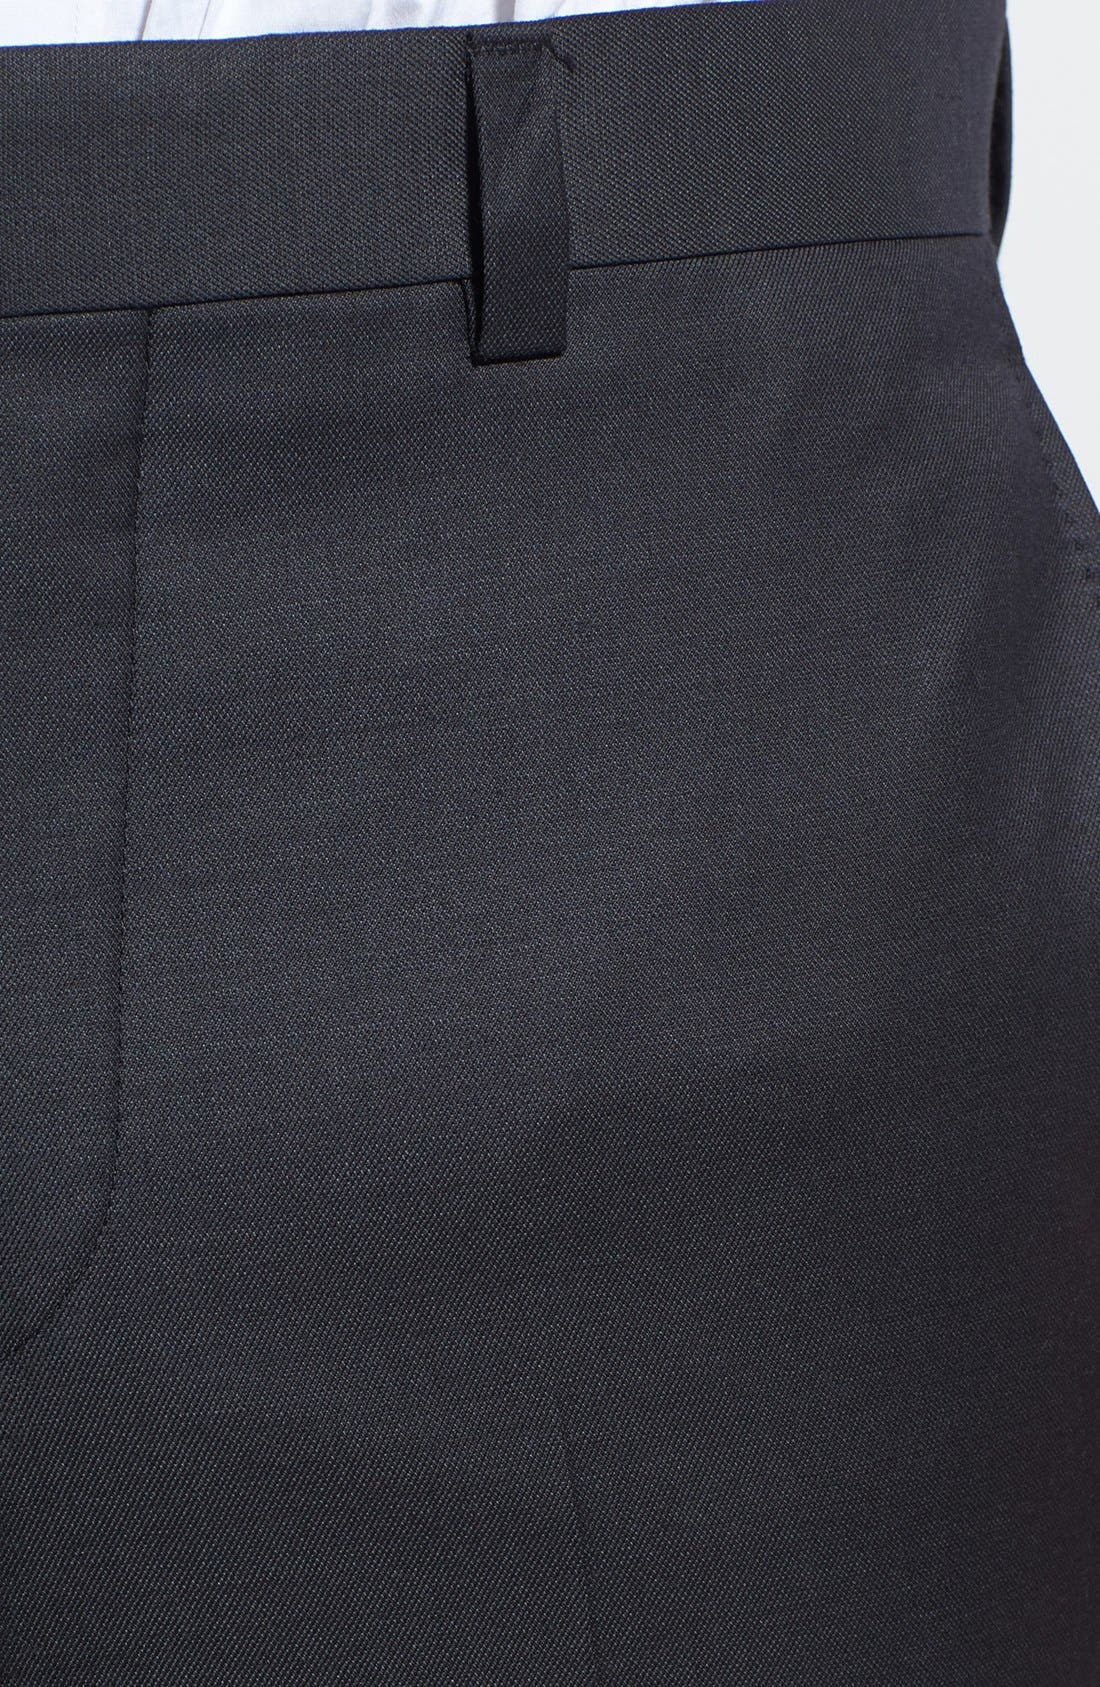 Jefferson Flat Front Wool Trousers,                             Alternate thumbnail 16, color,